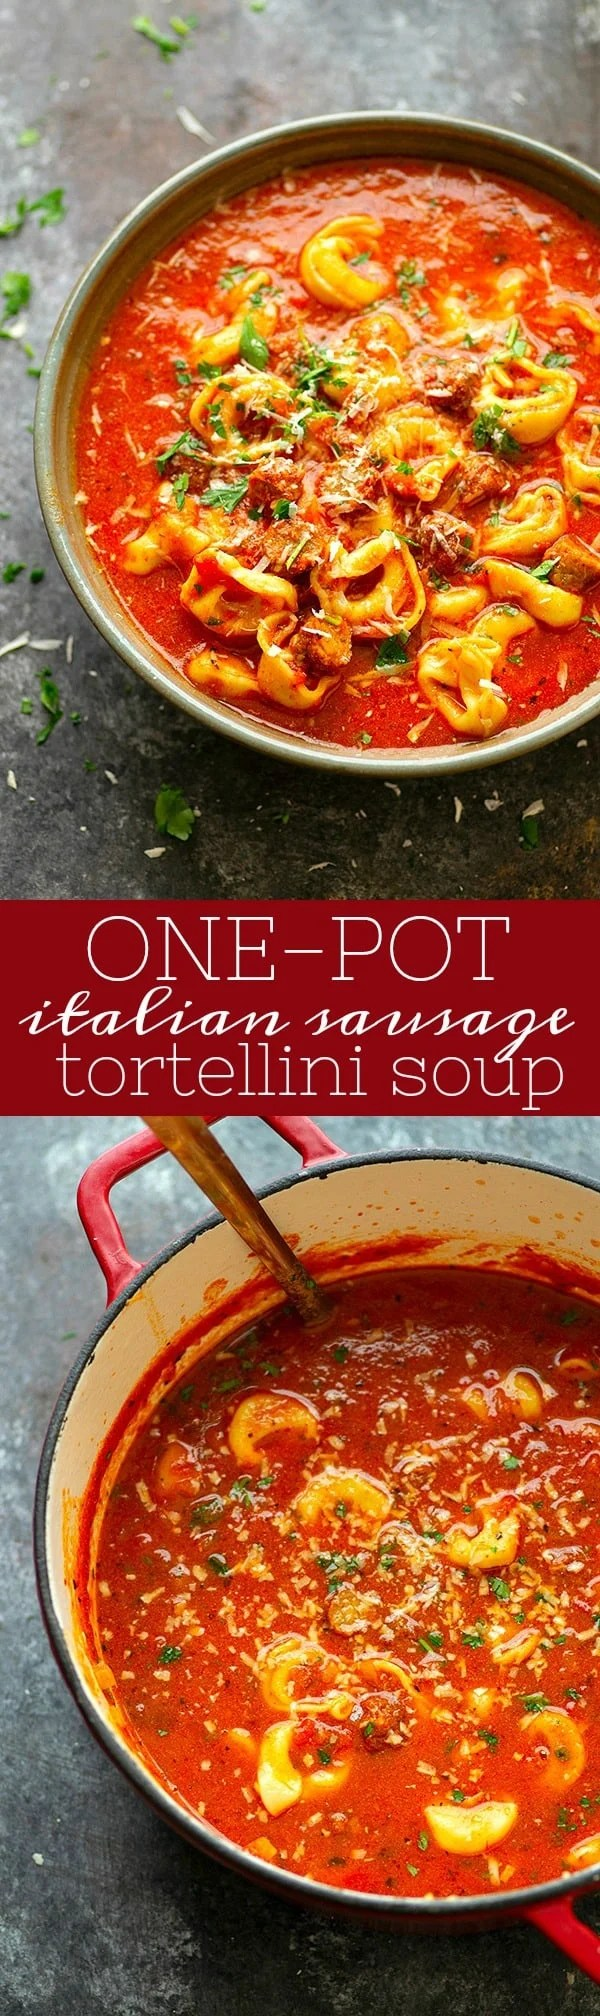 One Pot Italian Sausage Tortellini Soup - Flavorful sausage bits and cheese-filled tortellini join forces to make this ultimately cozy Italian-style sausage tortellini soup.